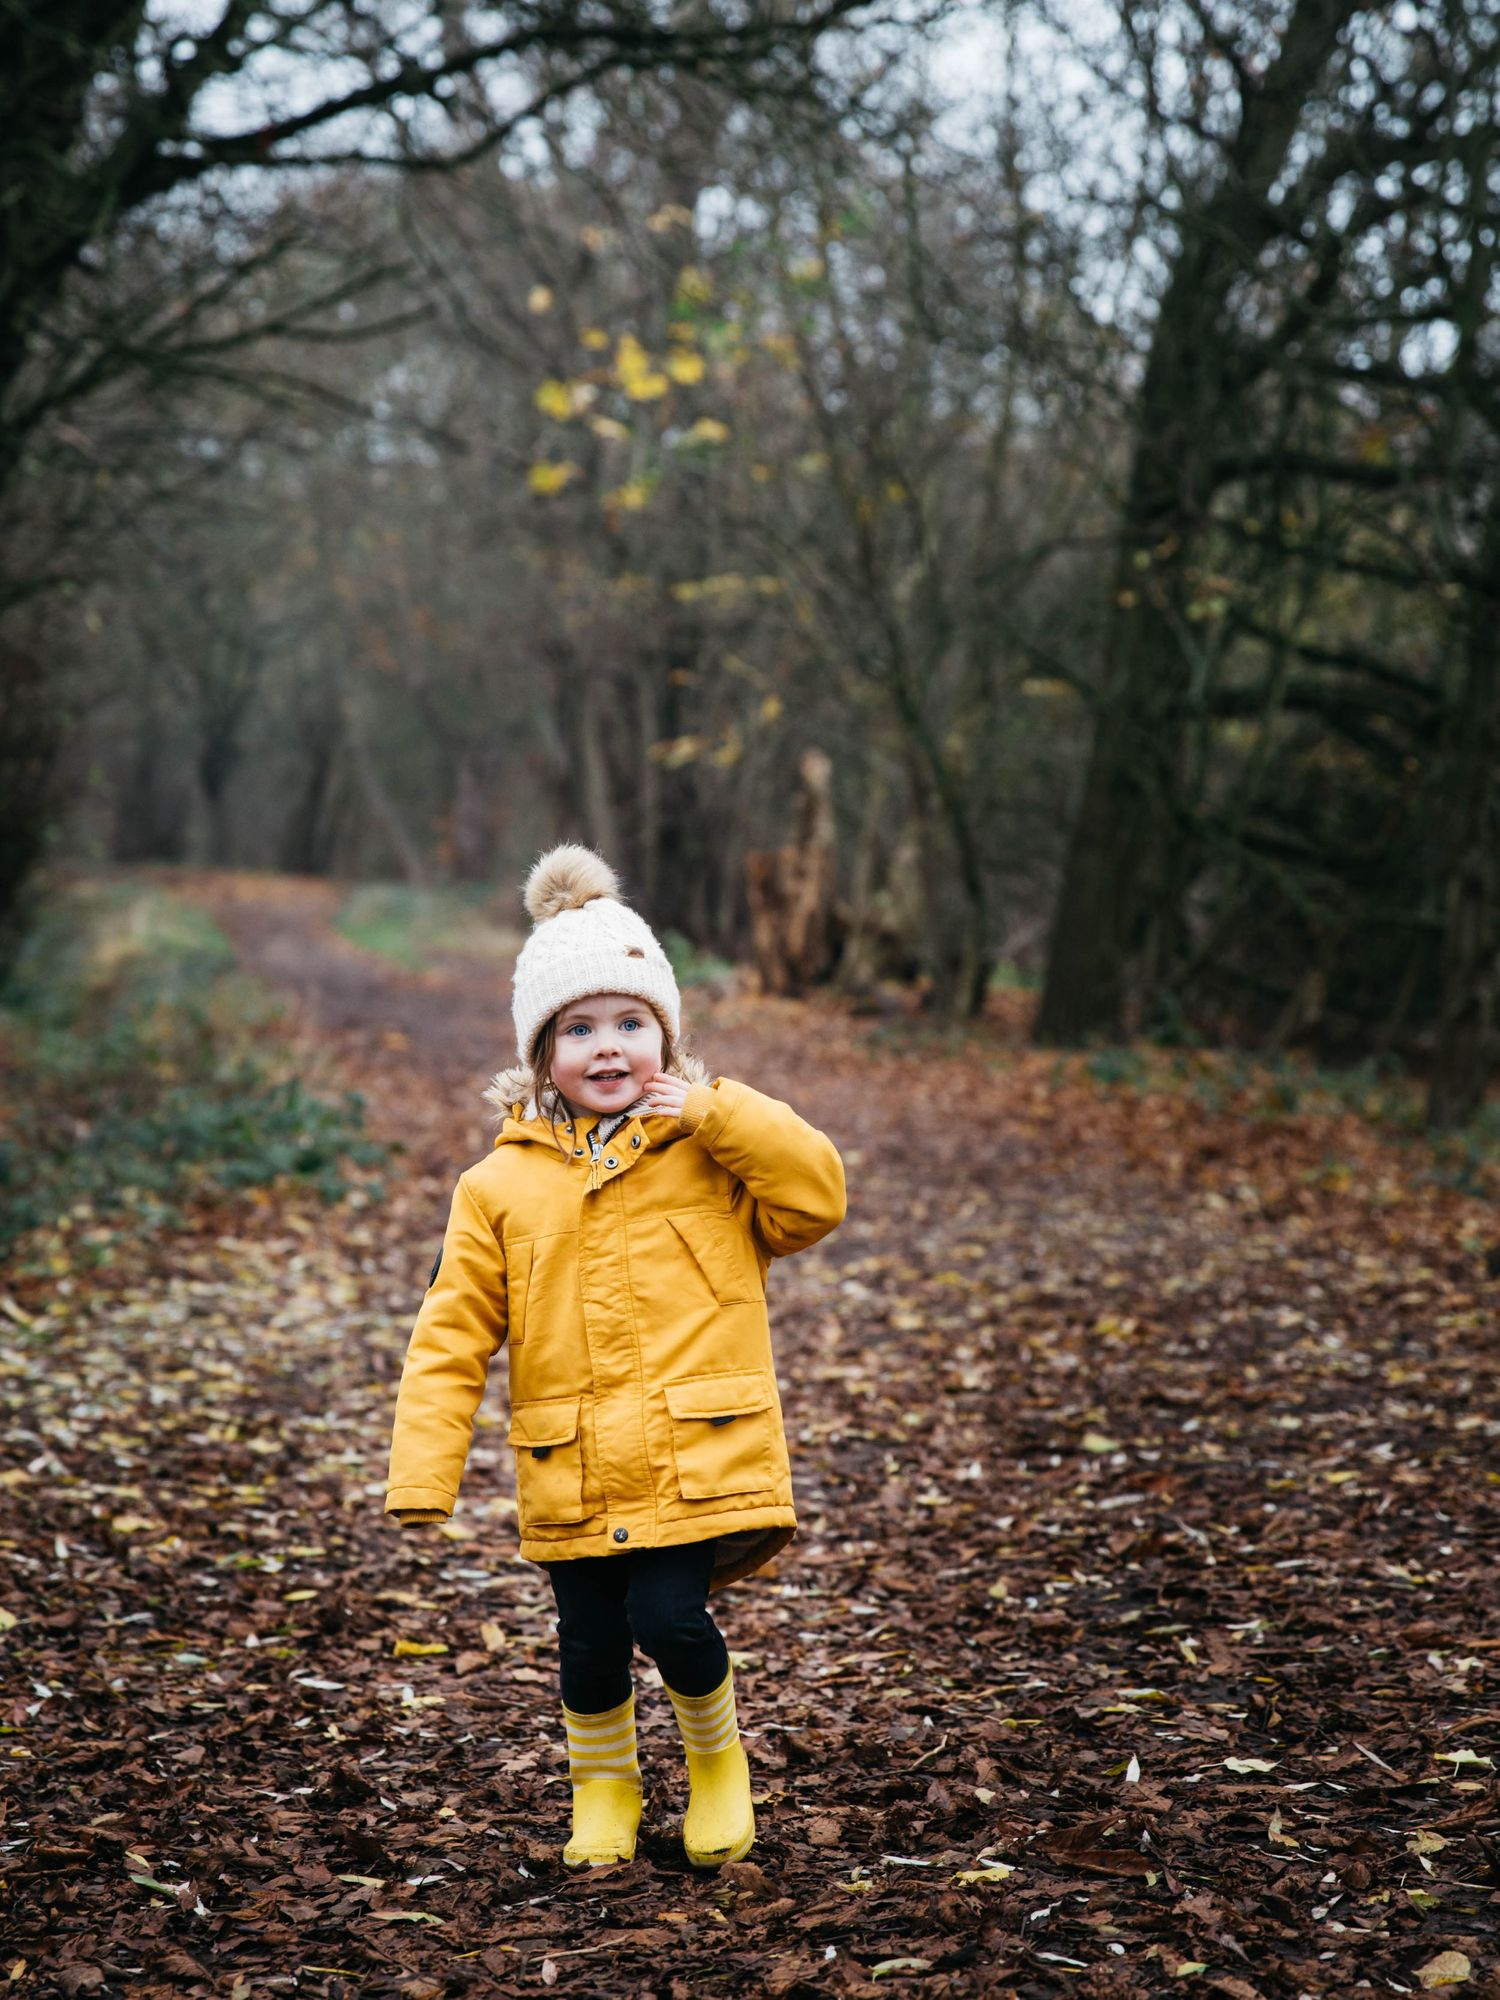 autumn walk in forest with small girl in yellow jacket